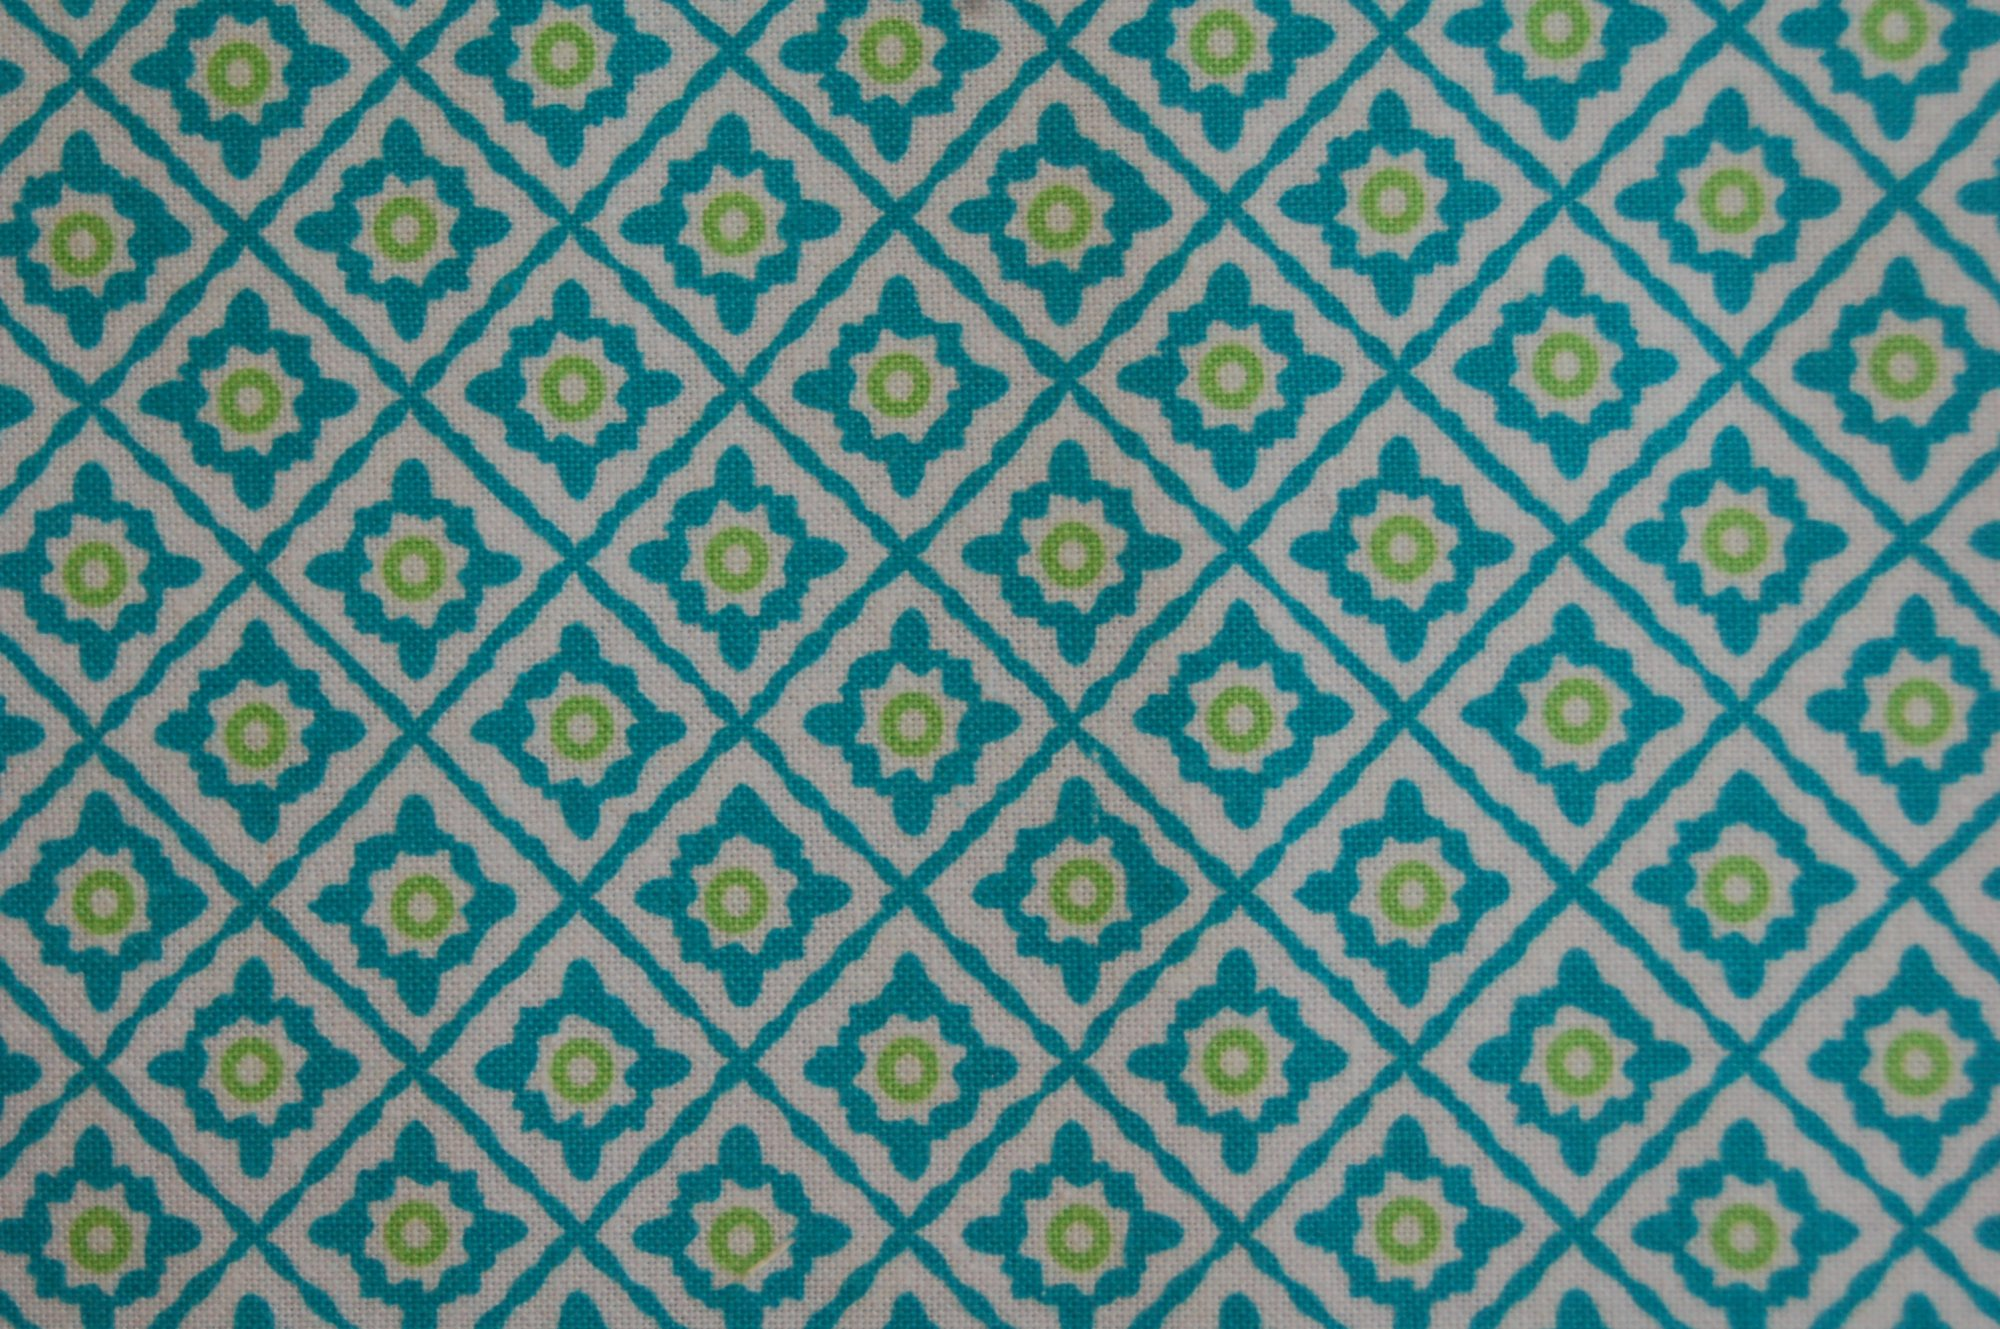 Turquoise Motif from Exclusively Quilters